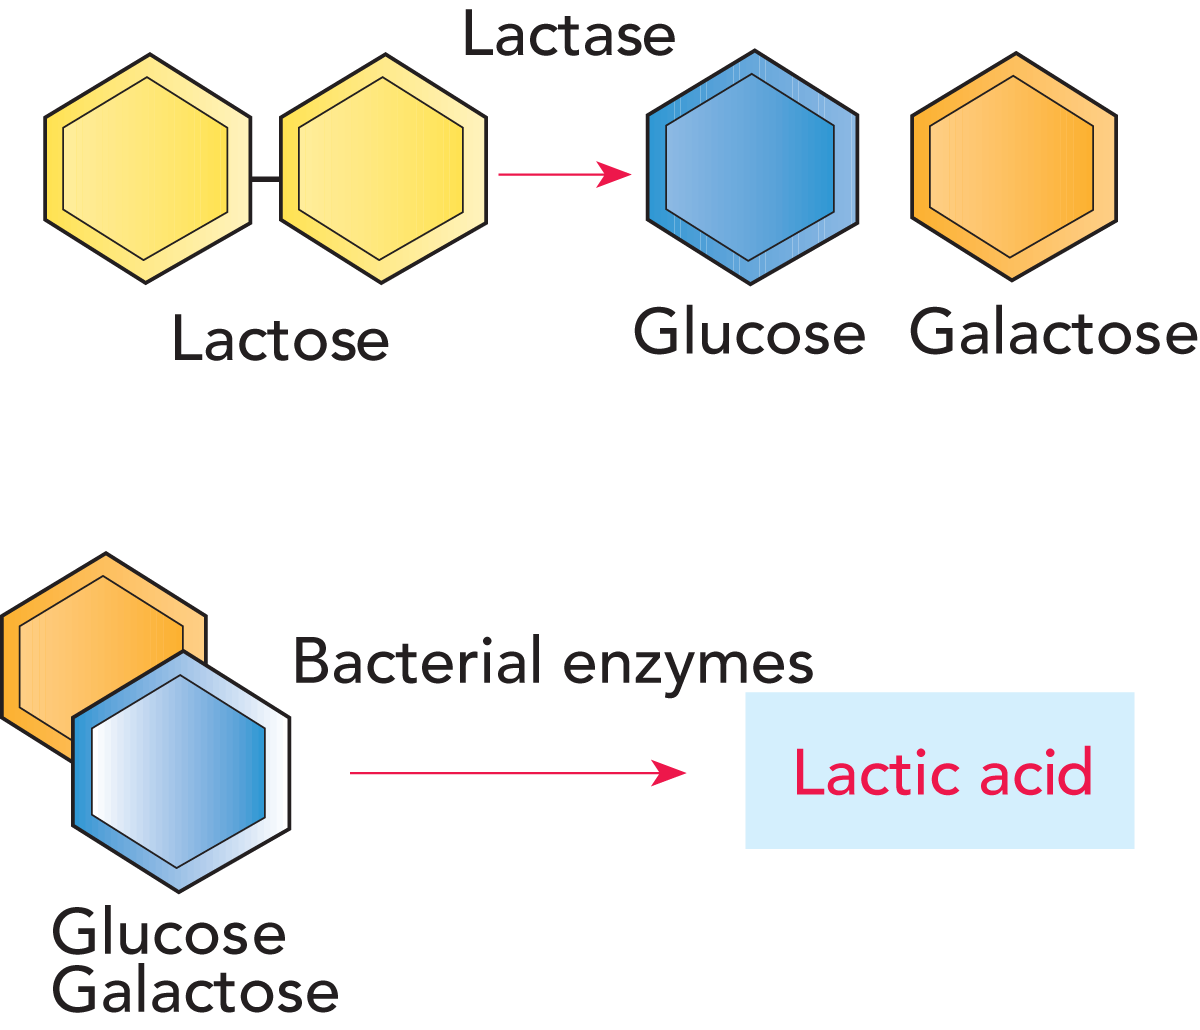 lactose solubility Be made is limited by the relatively low solubility of lactose and by the readiness with which super-saturated solutions tend to deposit crystals at.